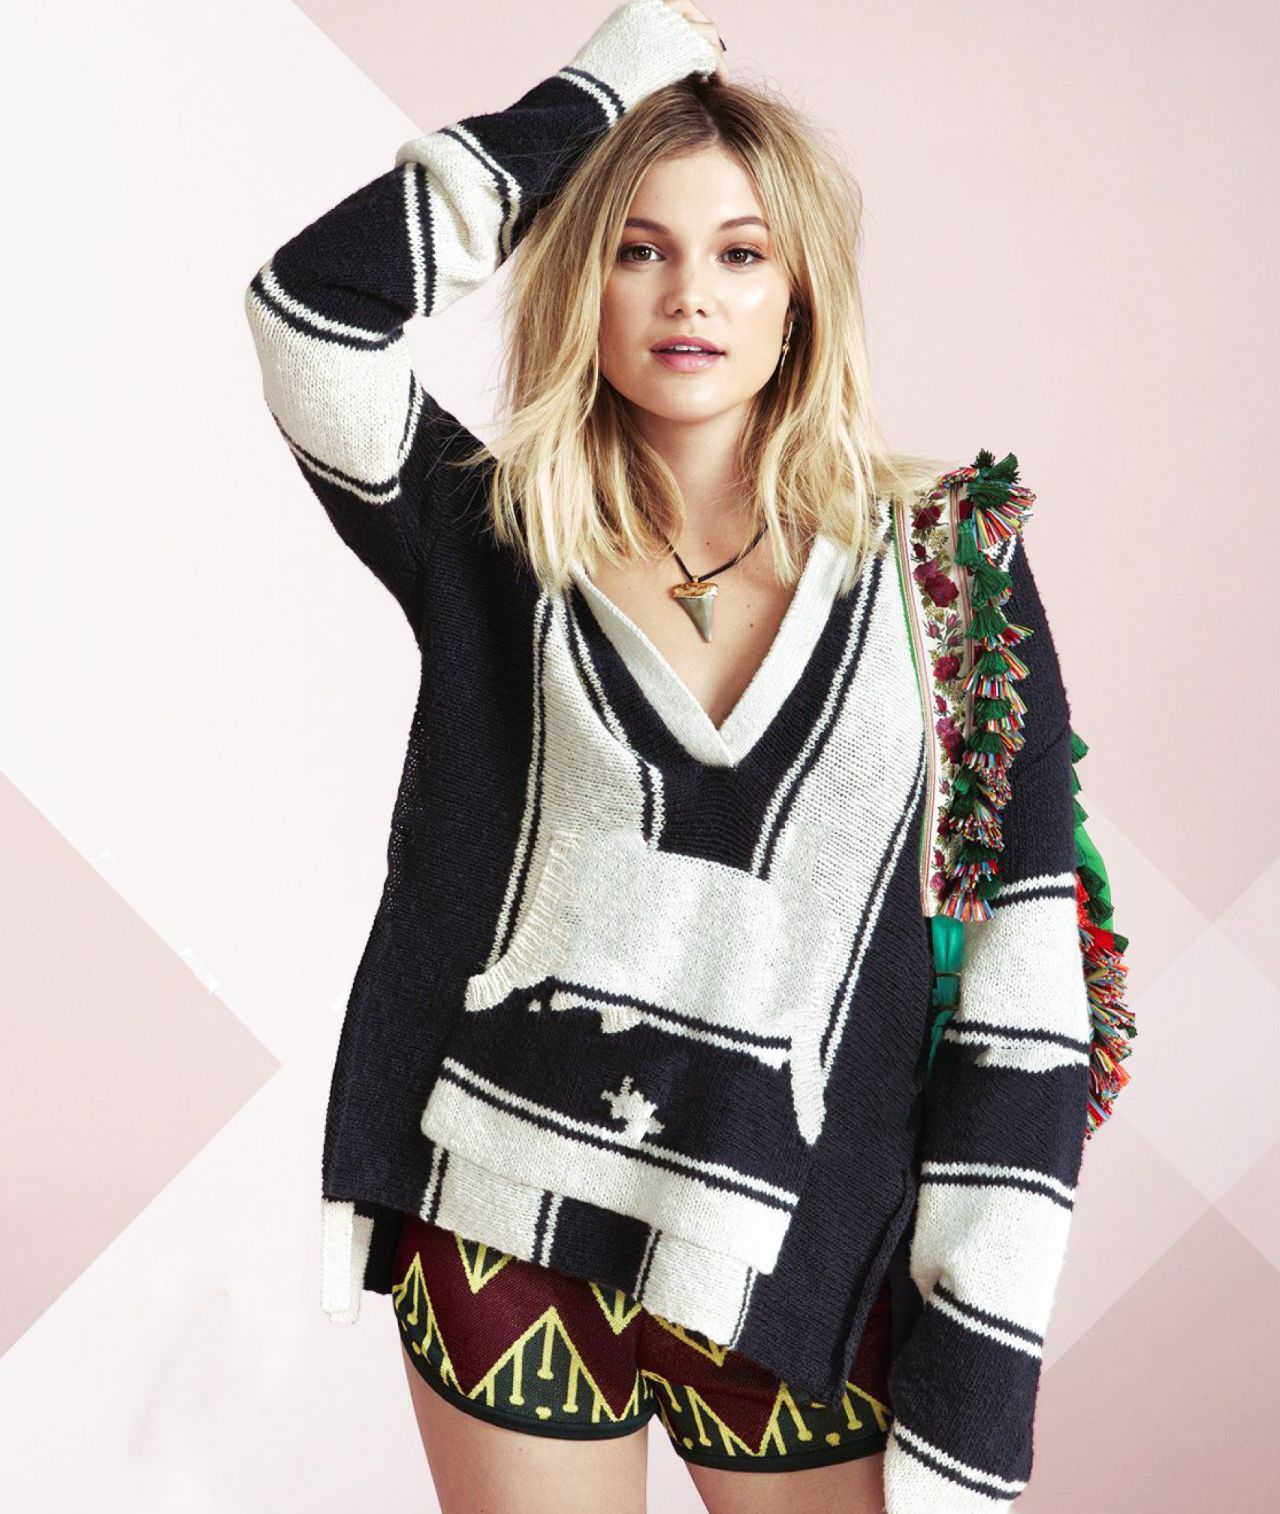 Olivia Holt Photoshoot For Seventeen Magazine March